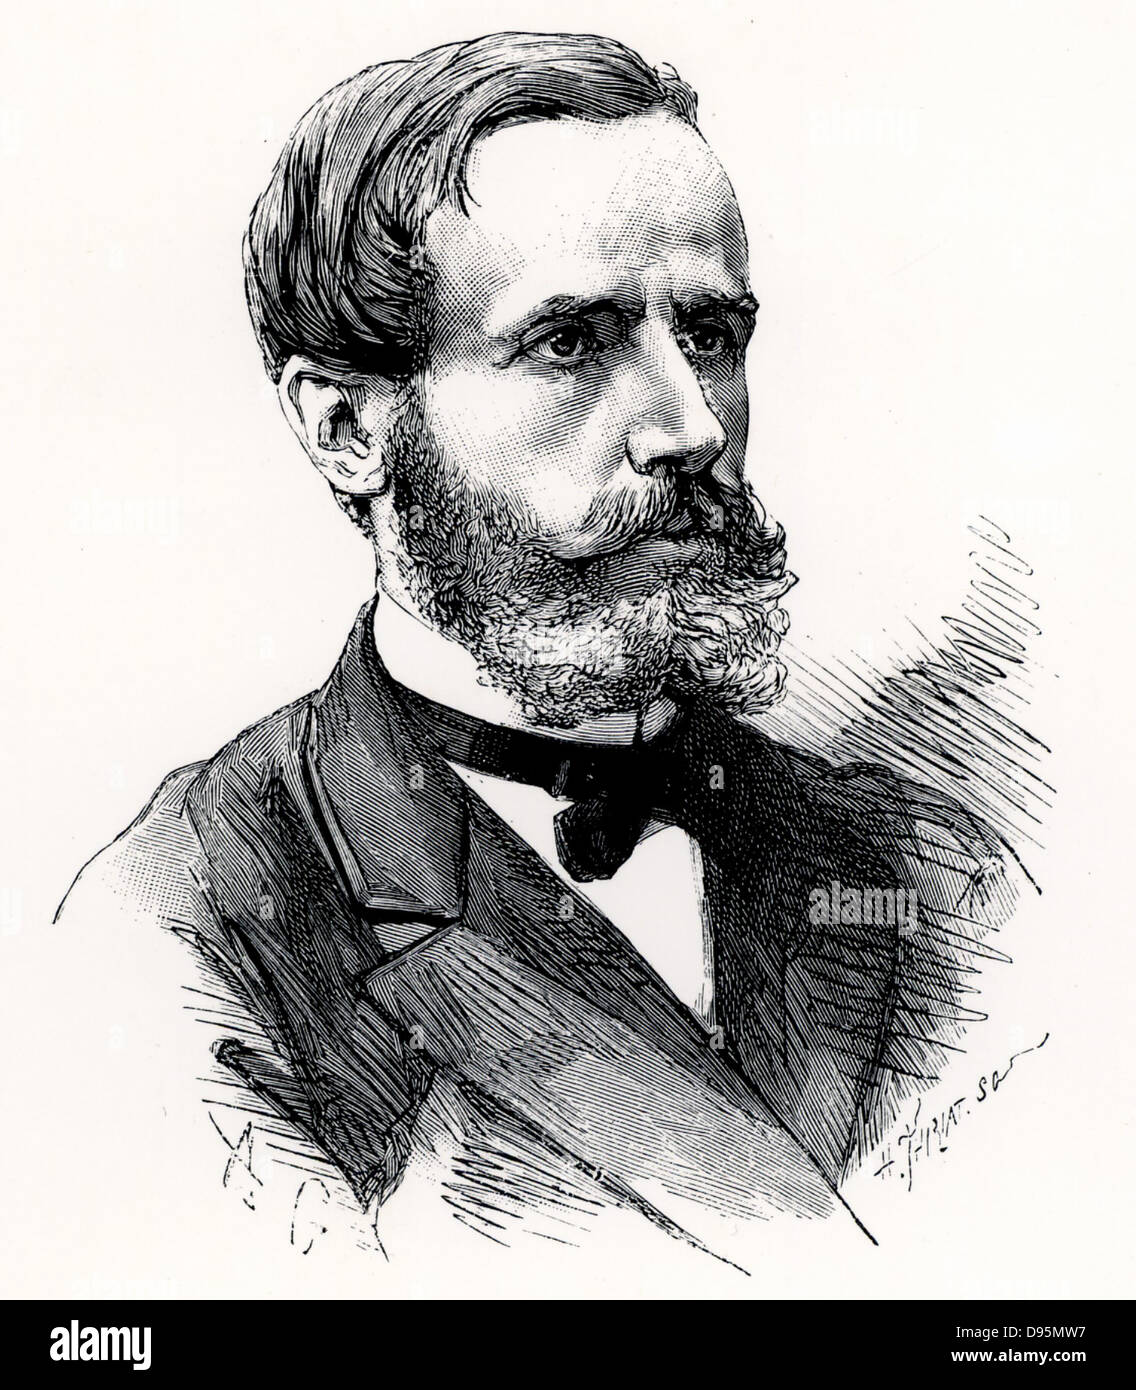 (Raymond) Gaston Plante (1834-1889) French physicist who in 1859 invented the first accumulator or electric storage - Stock Image